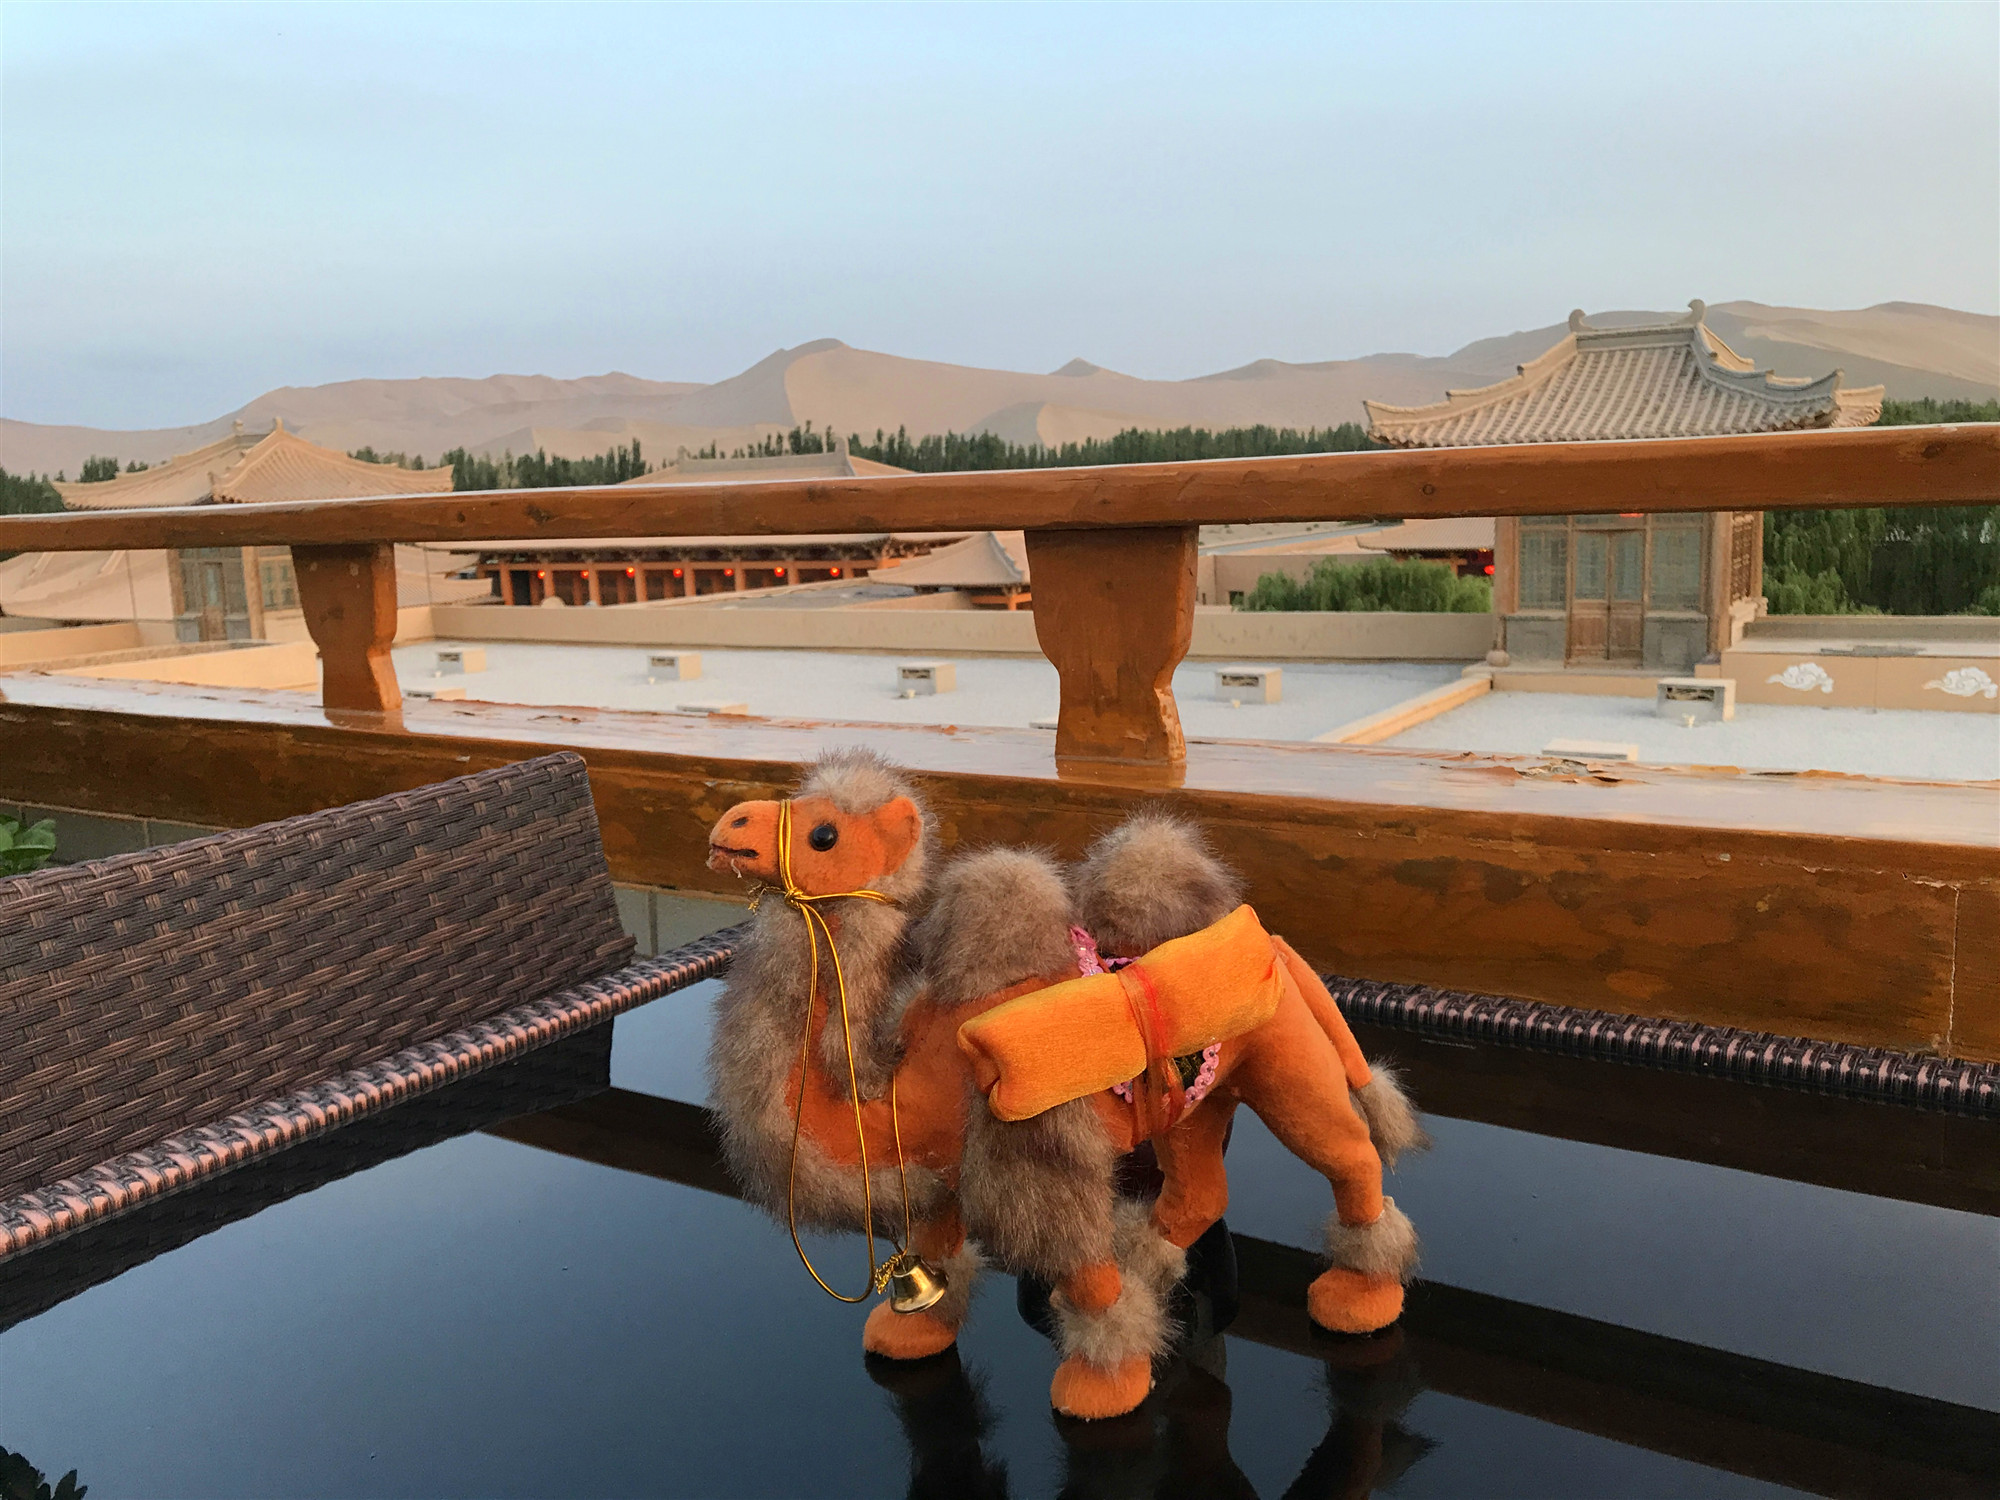 My Silk Road tour – Heading for Dunhuang, the Gem on Silk Road